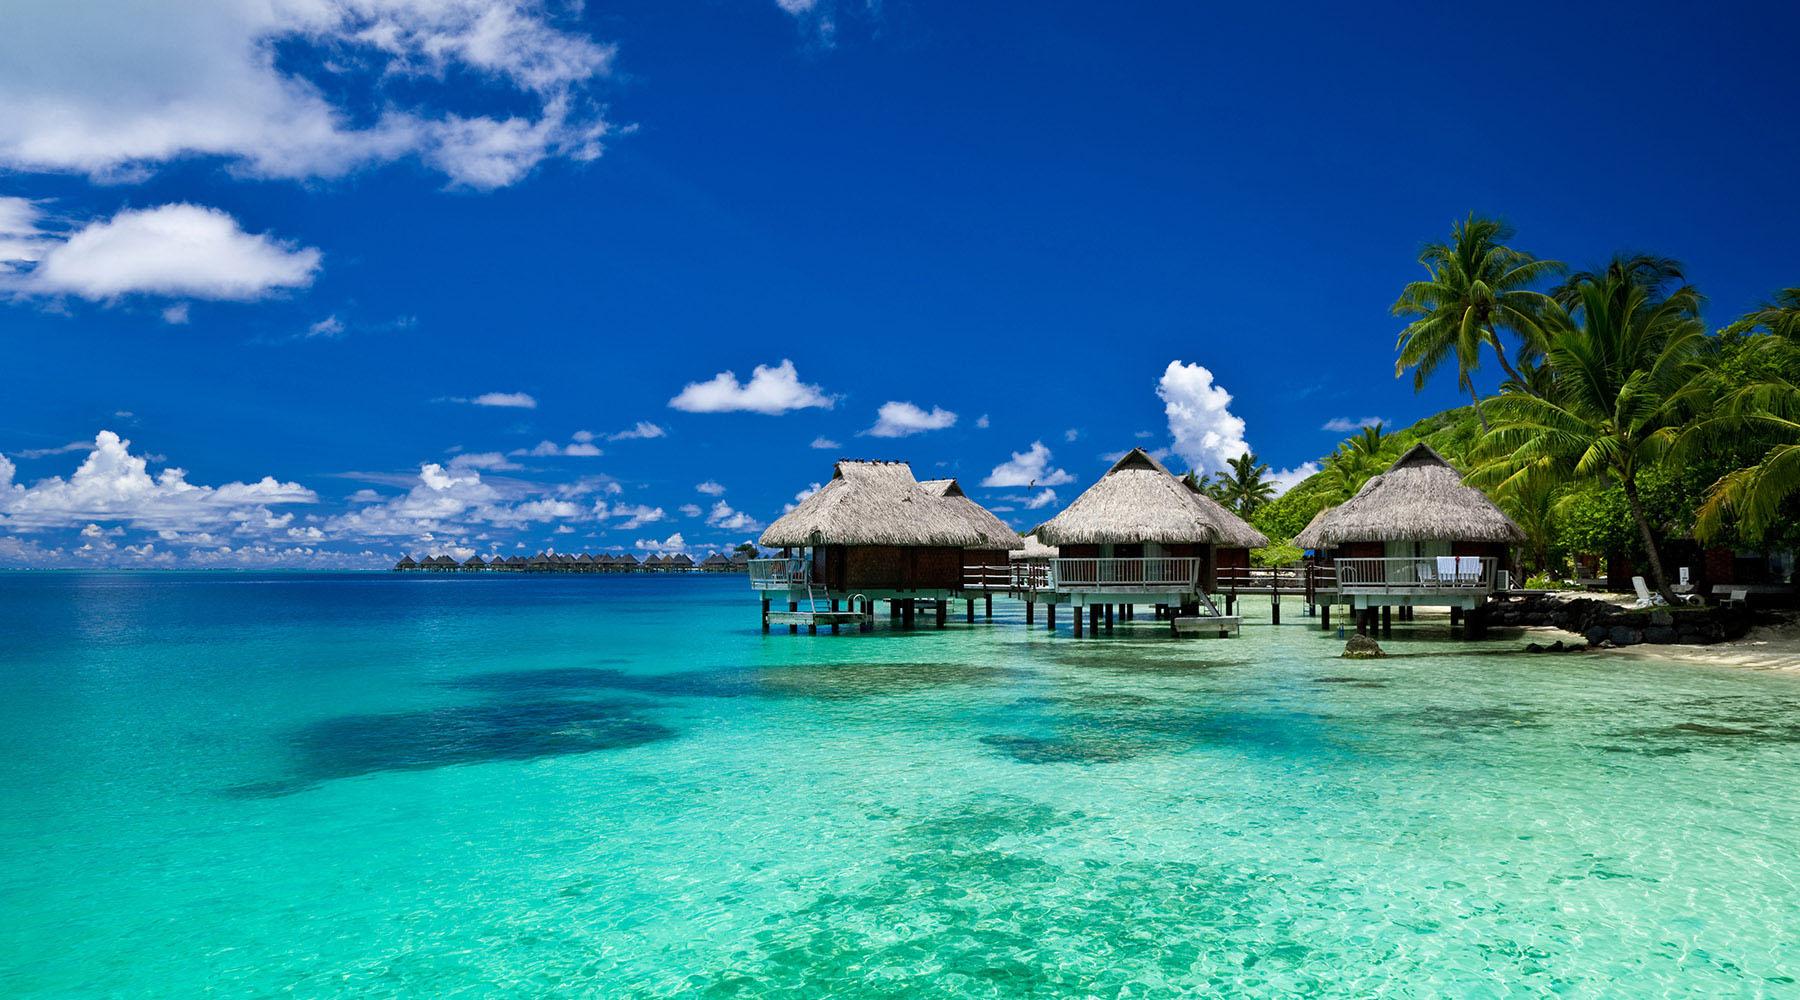 65-Night Grand Voyage: Endless Summer To Ancient Polynesia